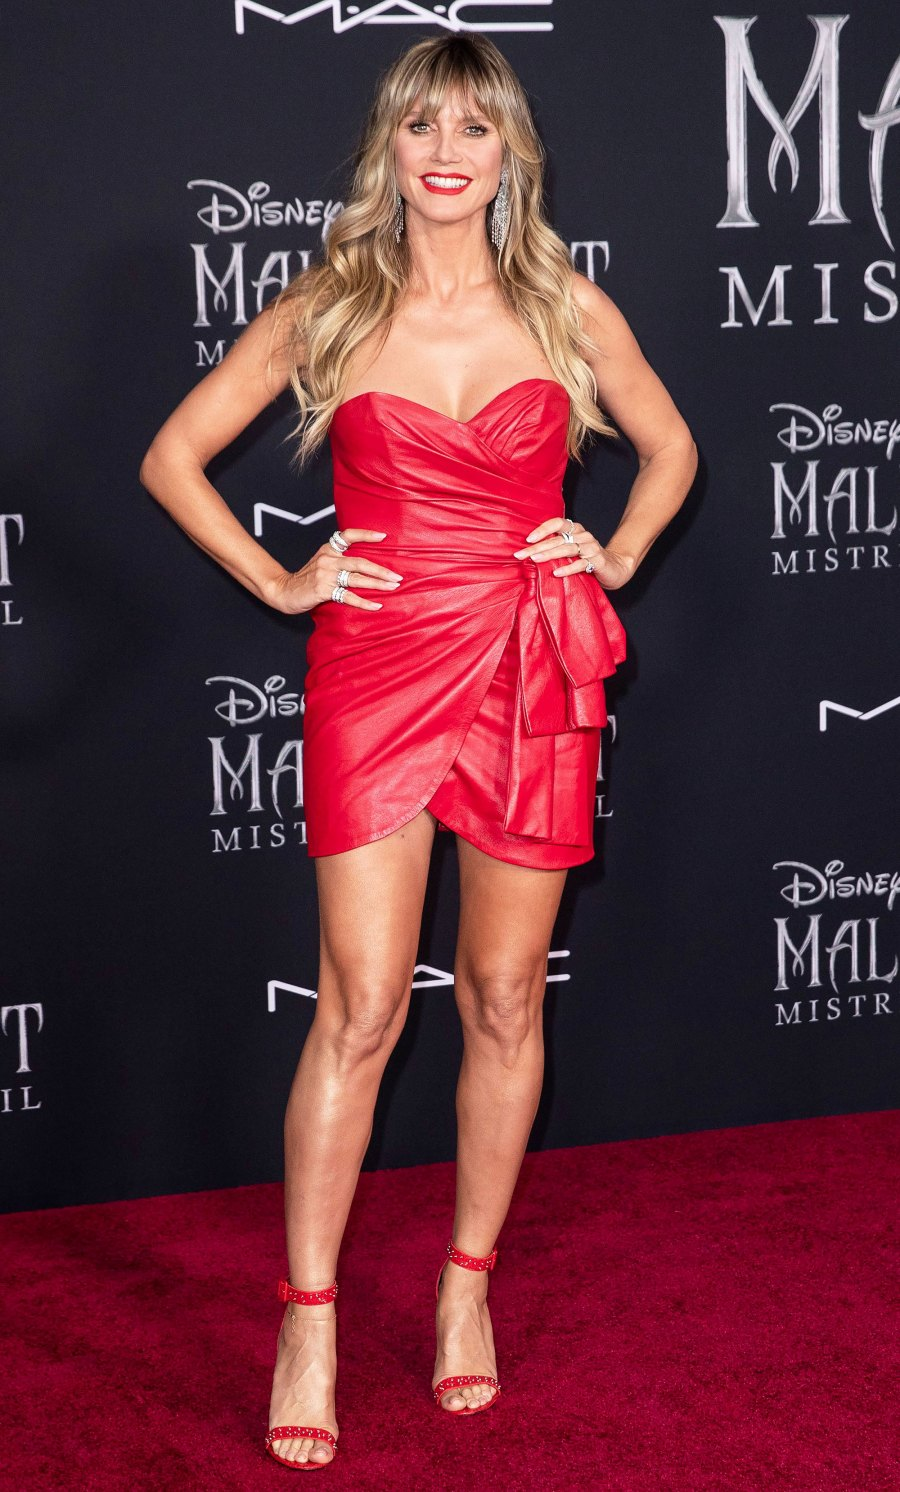 Celebs Stun In Red Leather On The Red Carpet